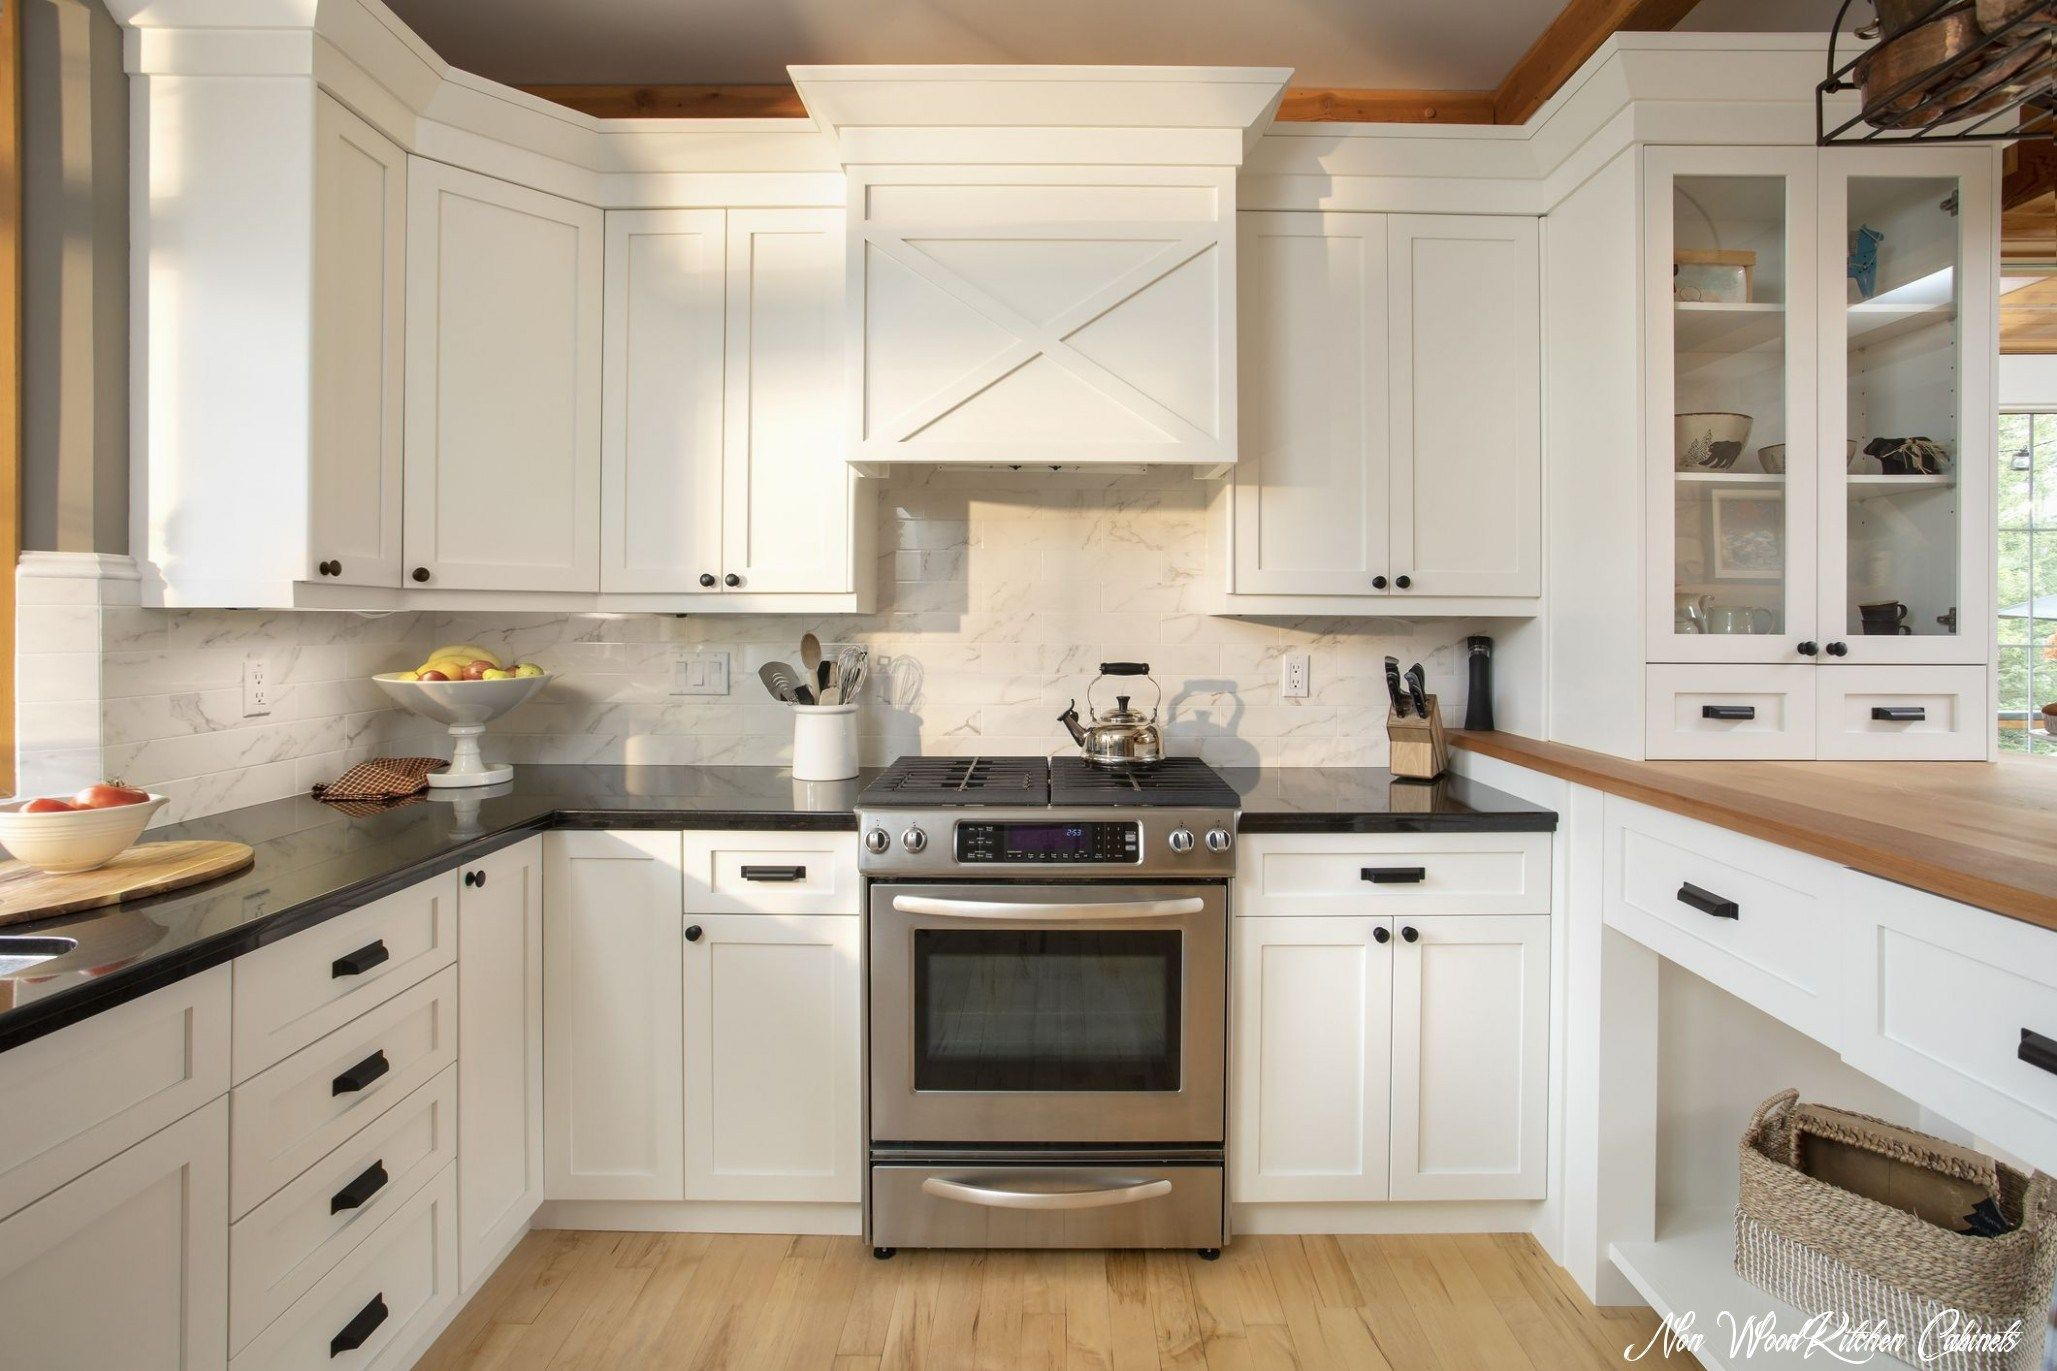 10 Non Wood Kitchen in 2020 Used kitchen